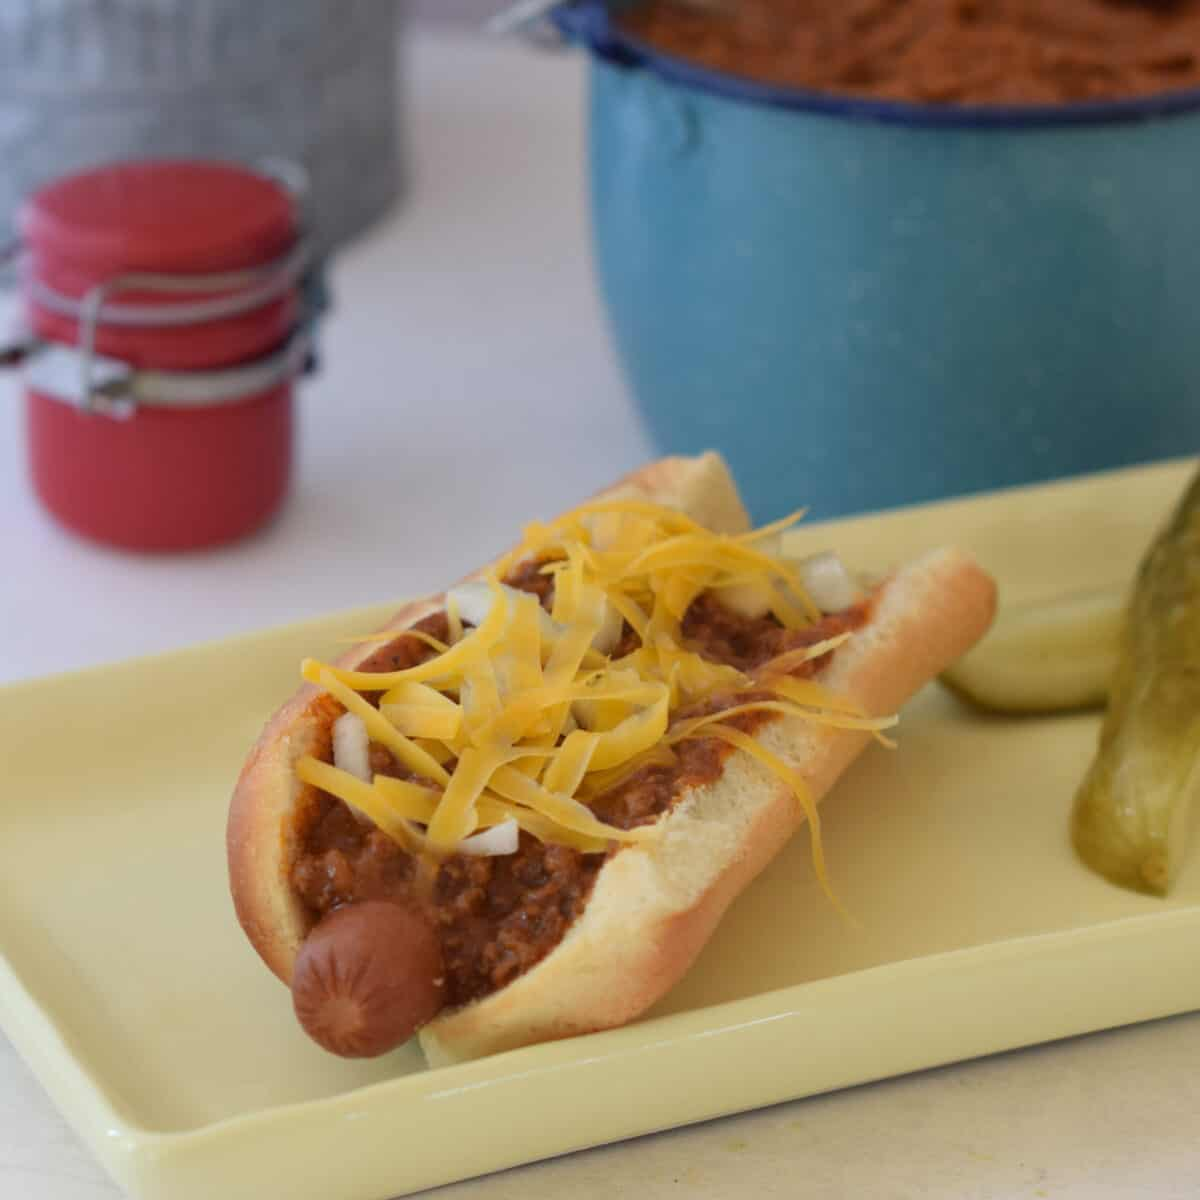 A hot dog dressed in Hormel Chili No Beans Copycat recipe sauce.